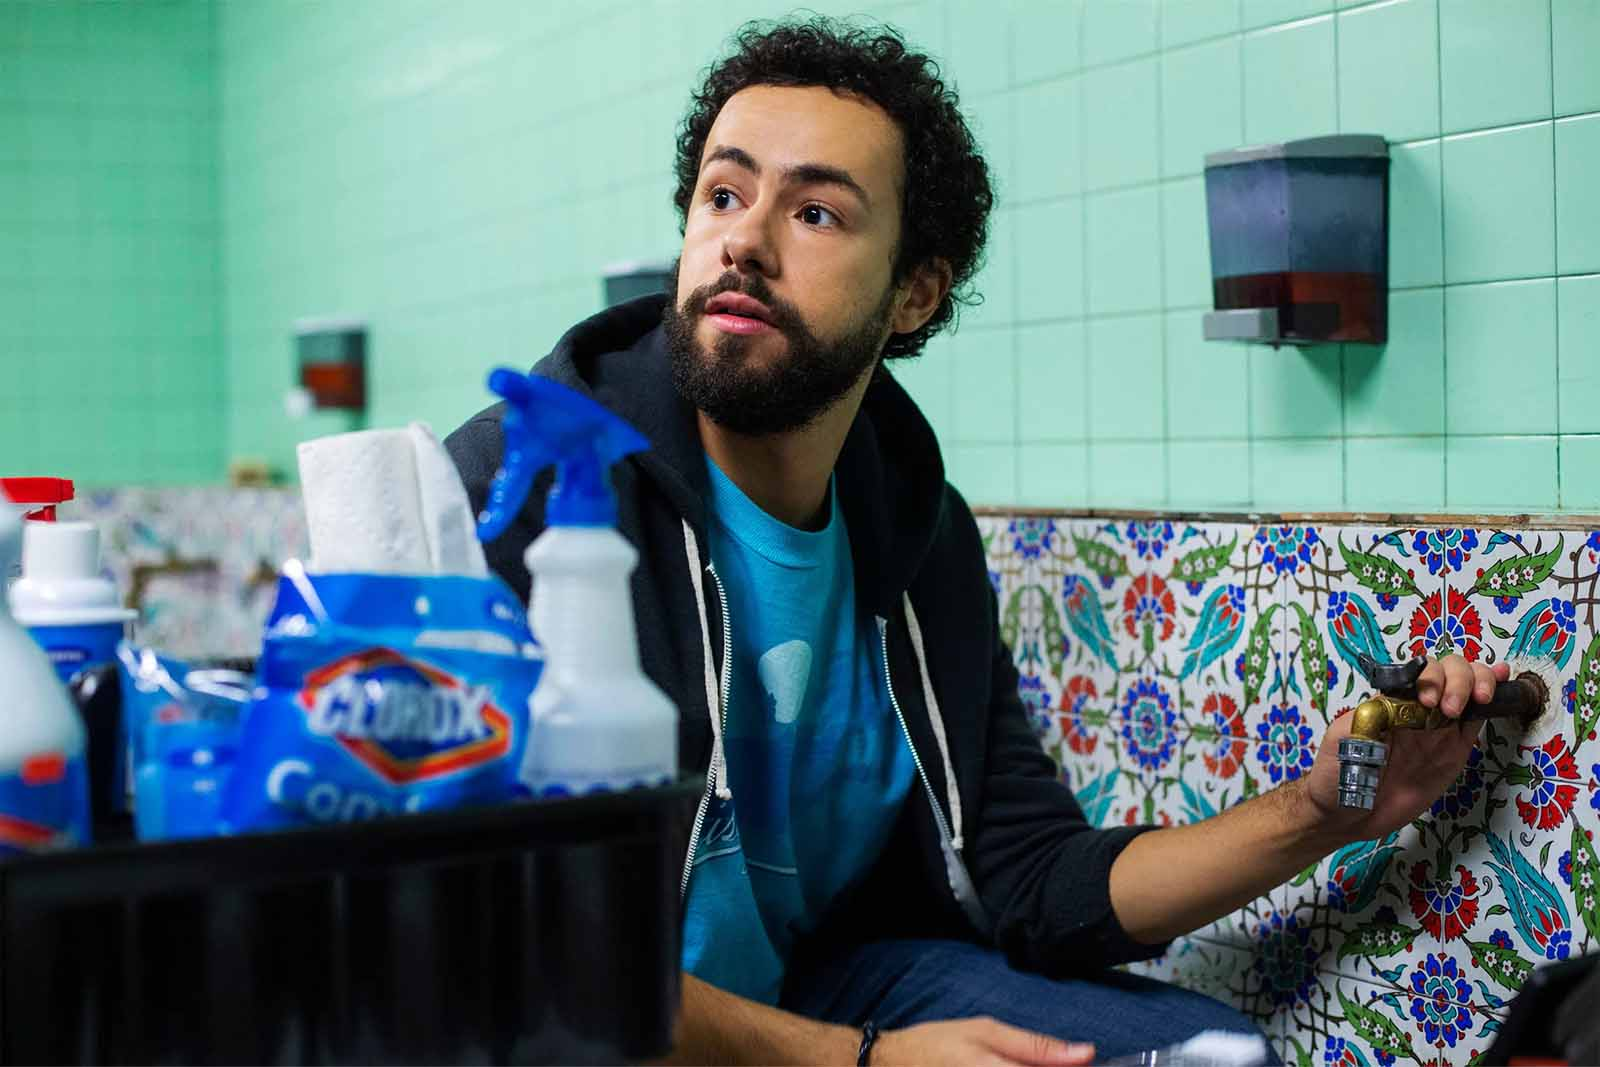 Ramy Youssef has made a name for himself with his stand-up comedy. But his self-insert series 'Ramy' is proving he has more talents that just comedy.